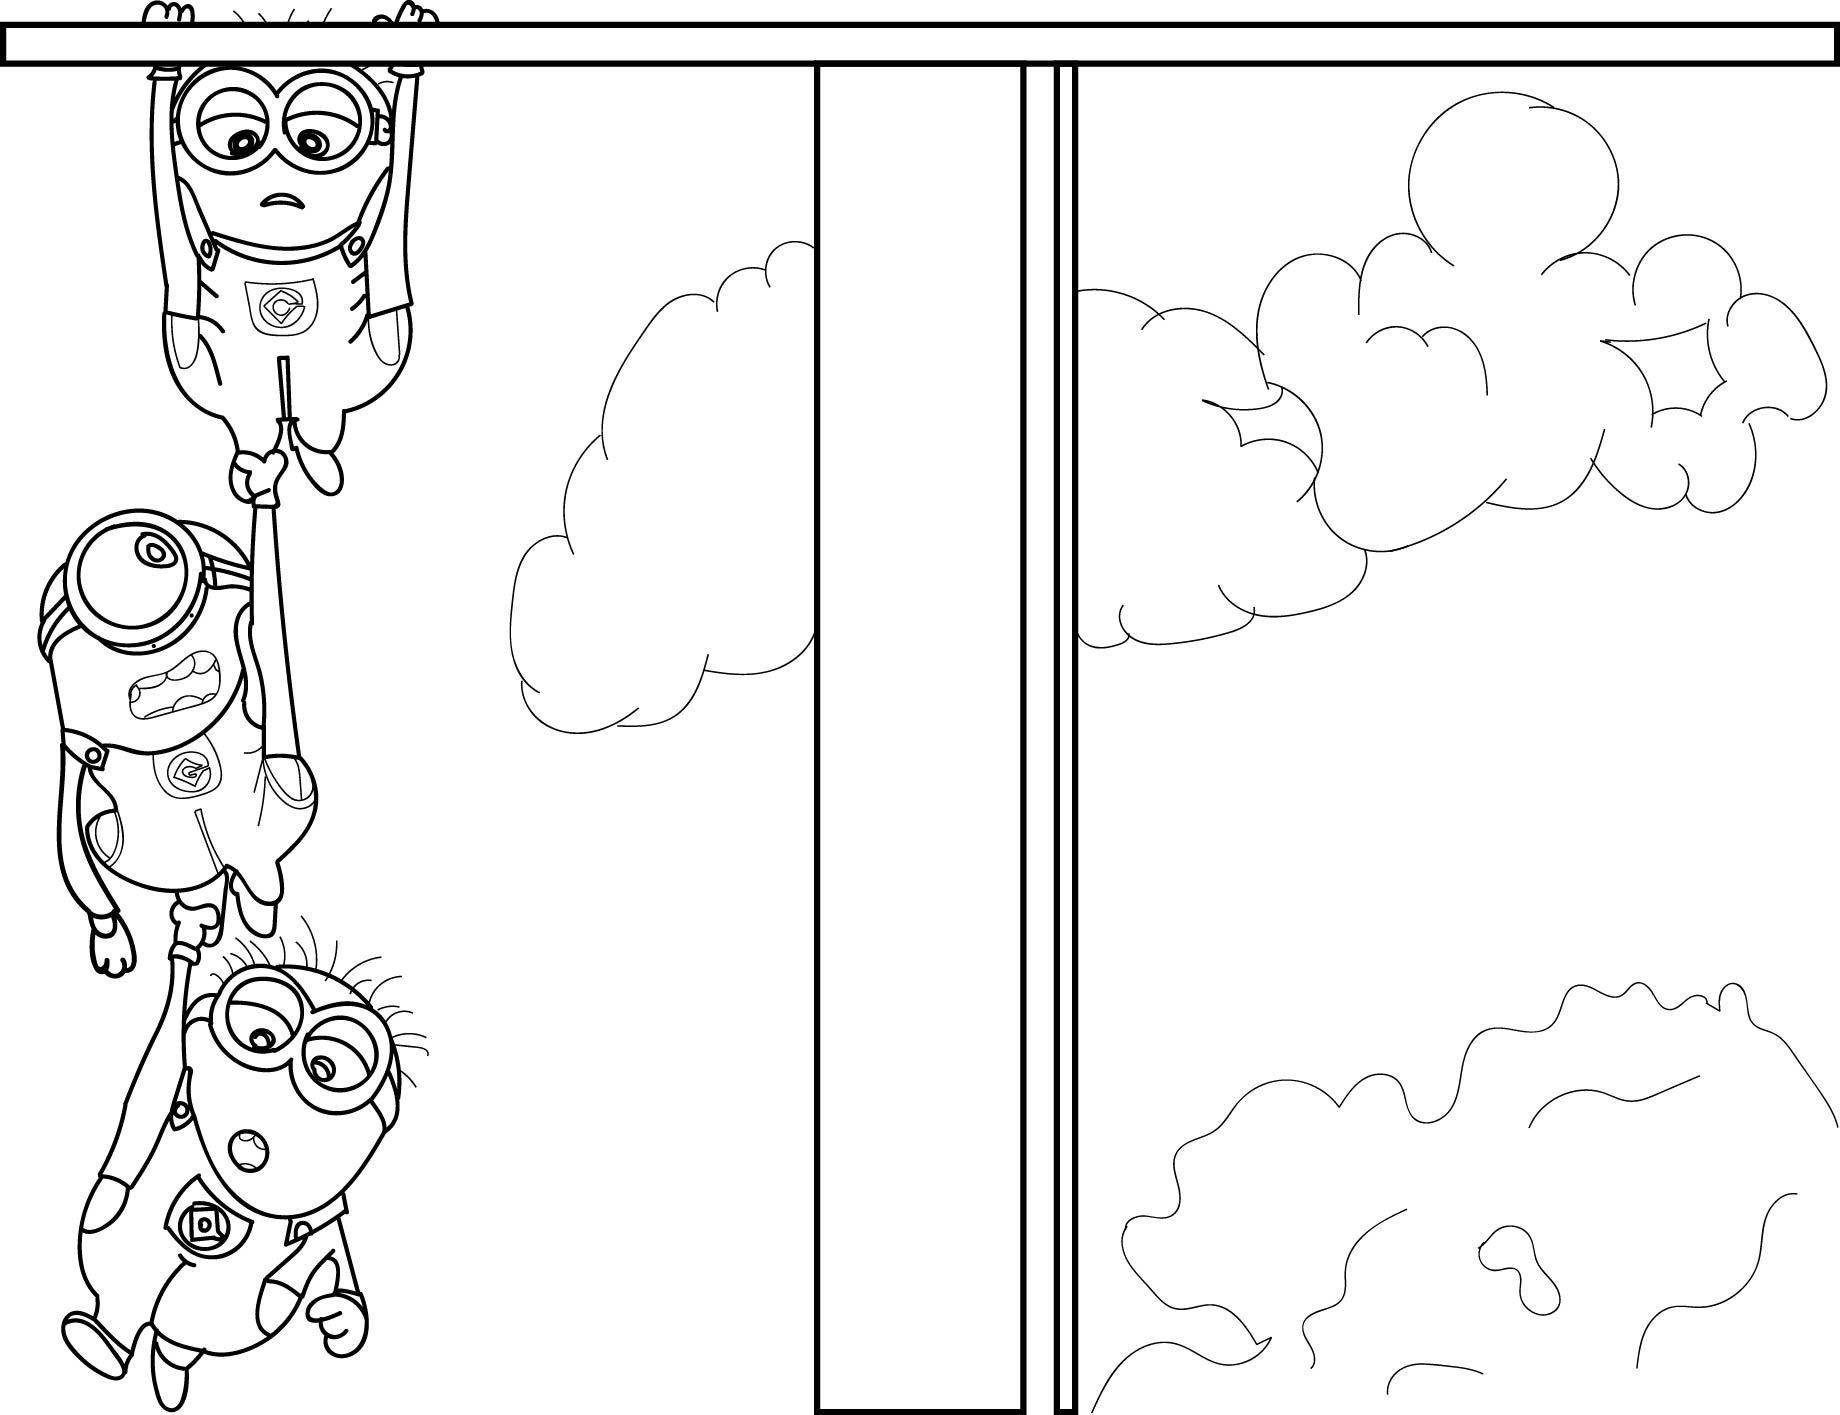 2013 Despicable Me 2 Minions Coloring Page